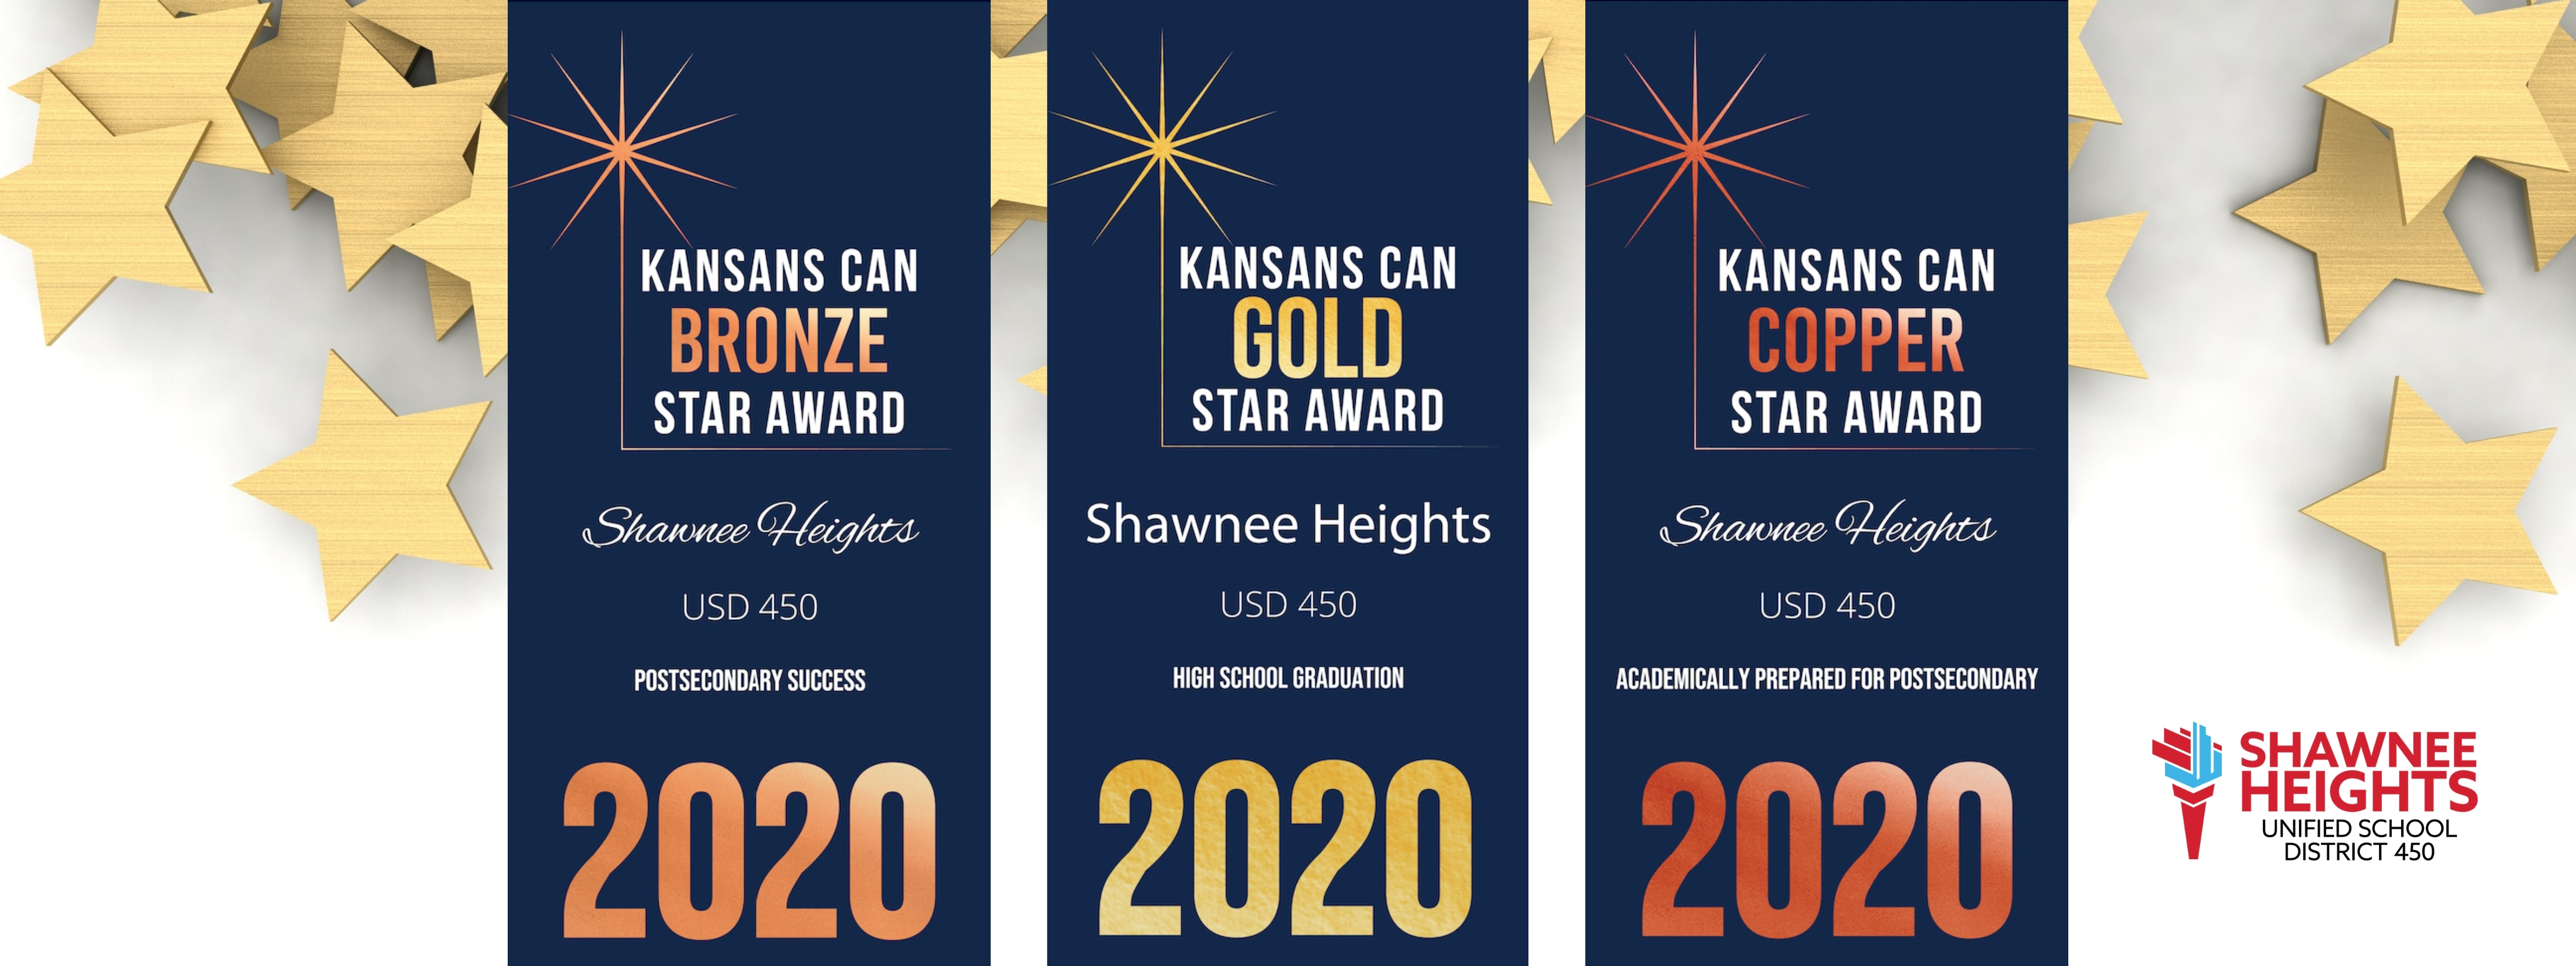 Kansas Can Star Recognitions